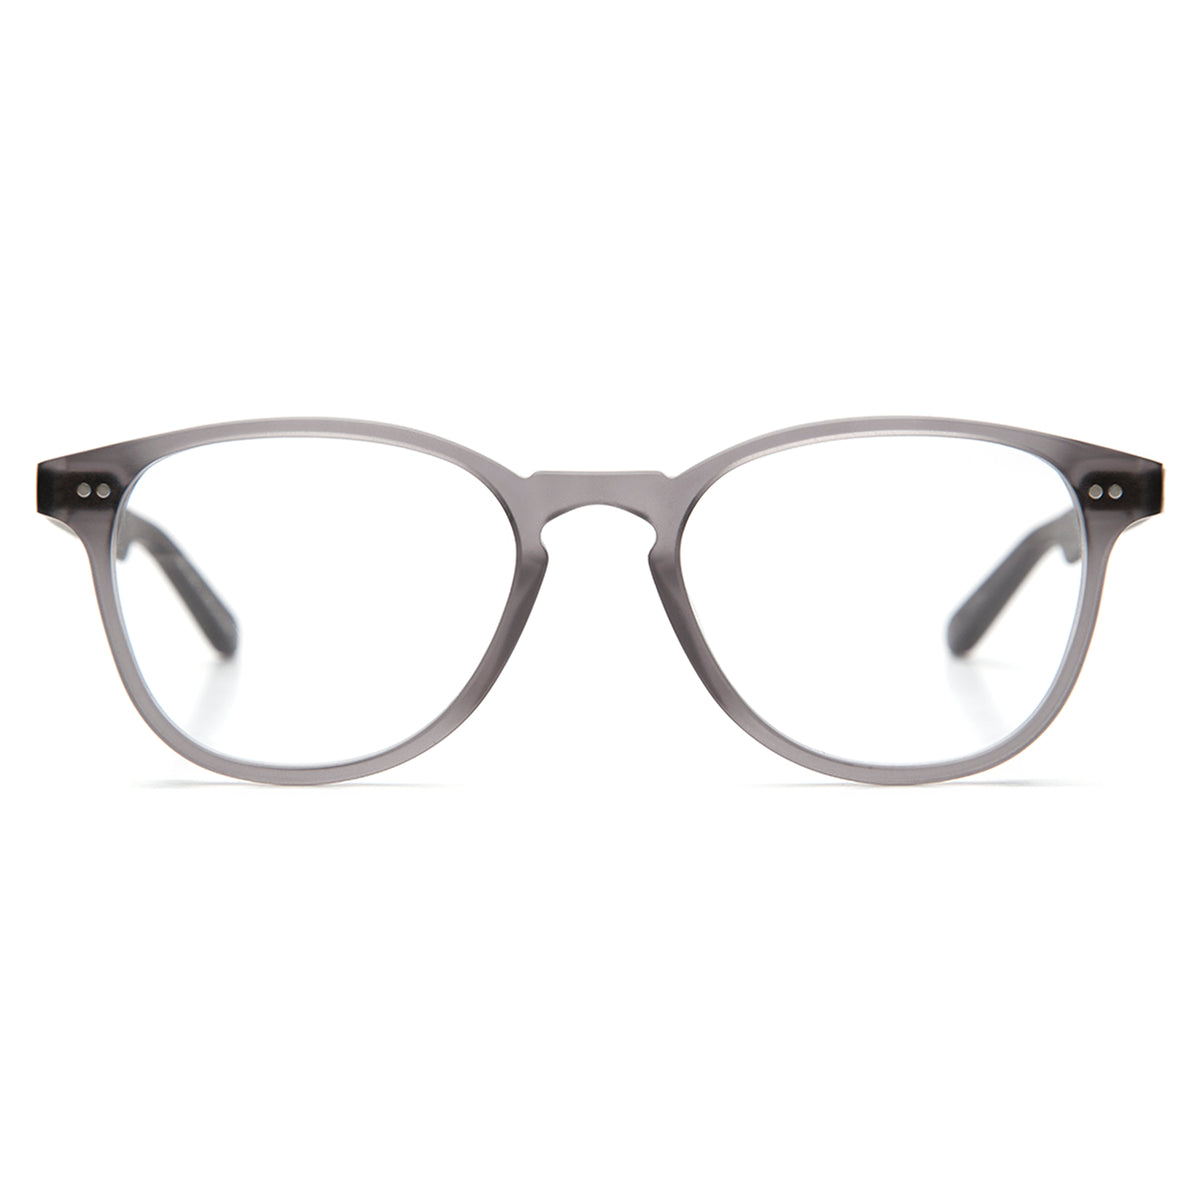 PERRIER | Matte Ash - Handmade acetate Optical frames with a keyhole nose bridge.